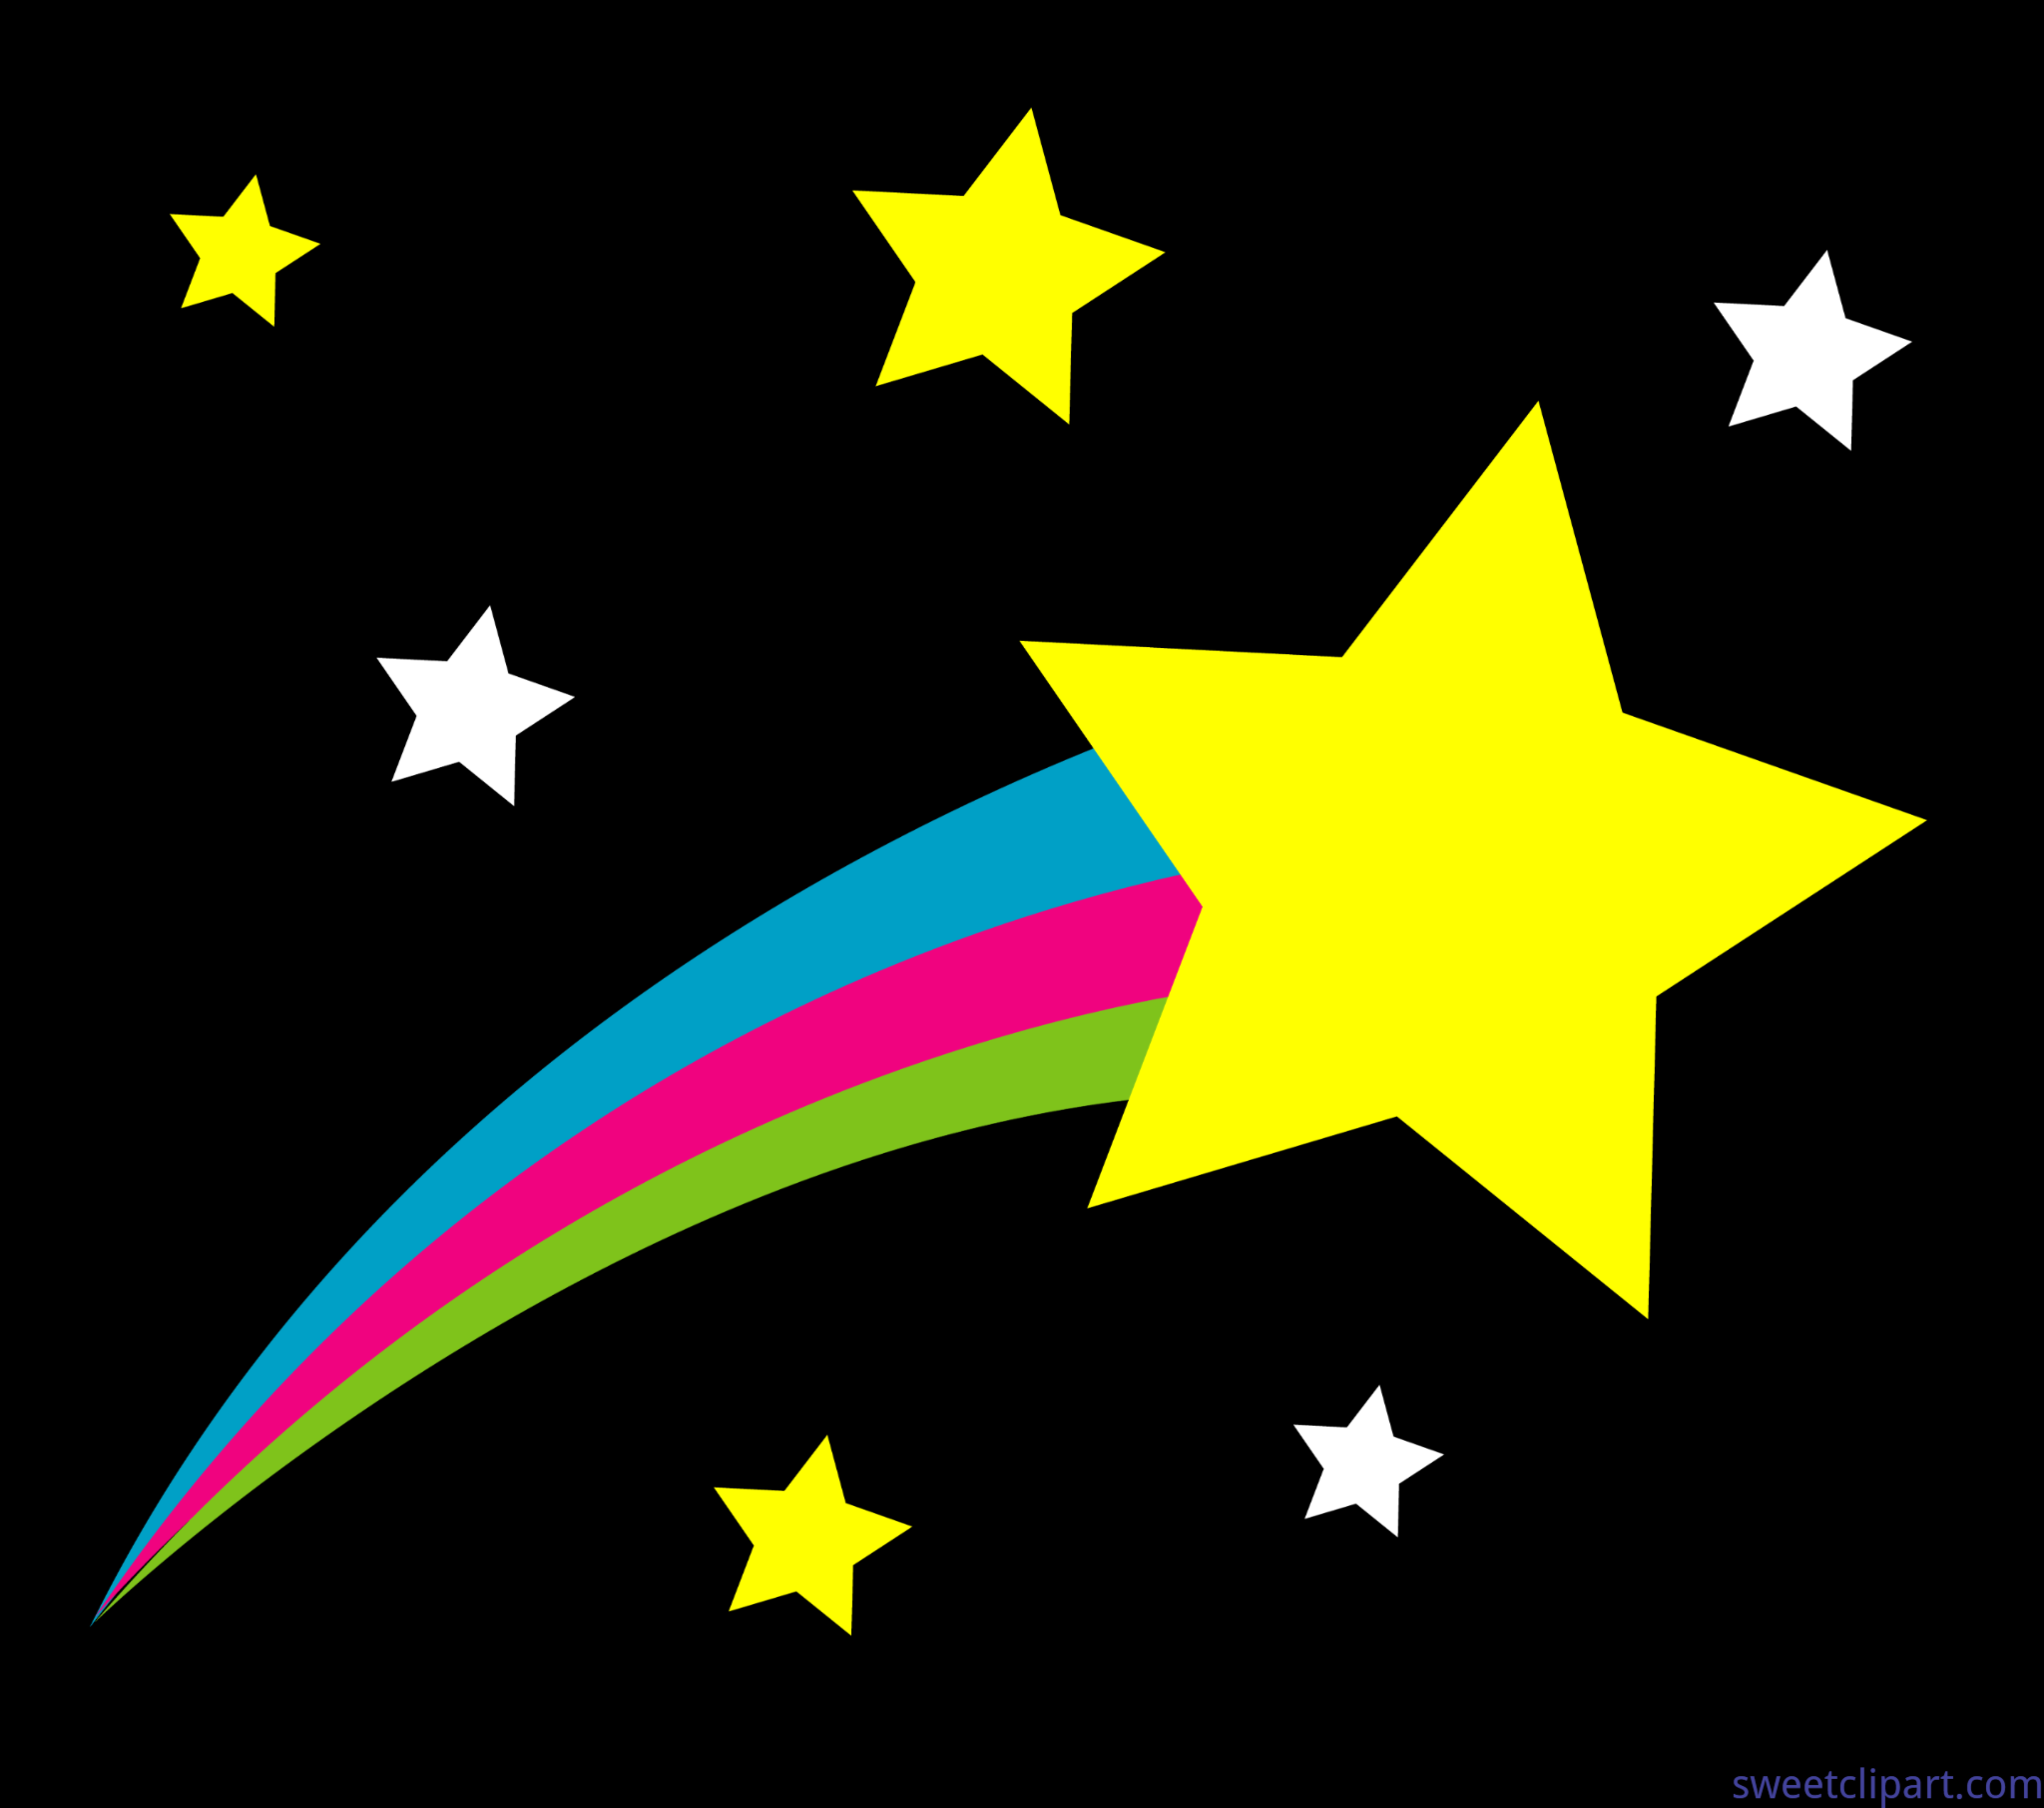 Outer Space Shooting Star Black Background Clip Art.